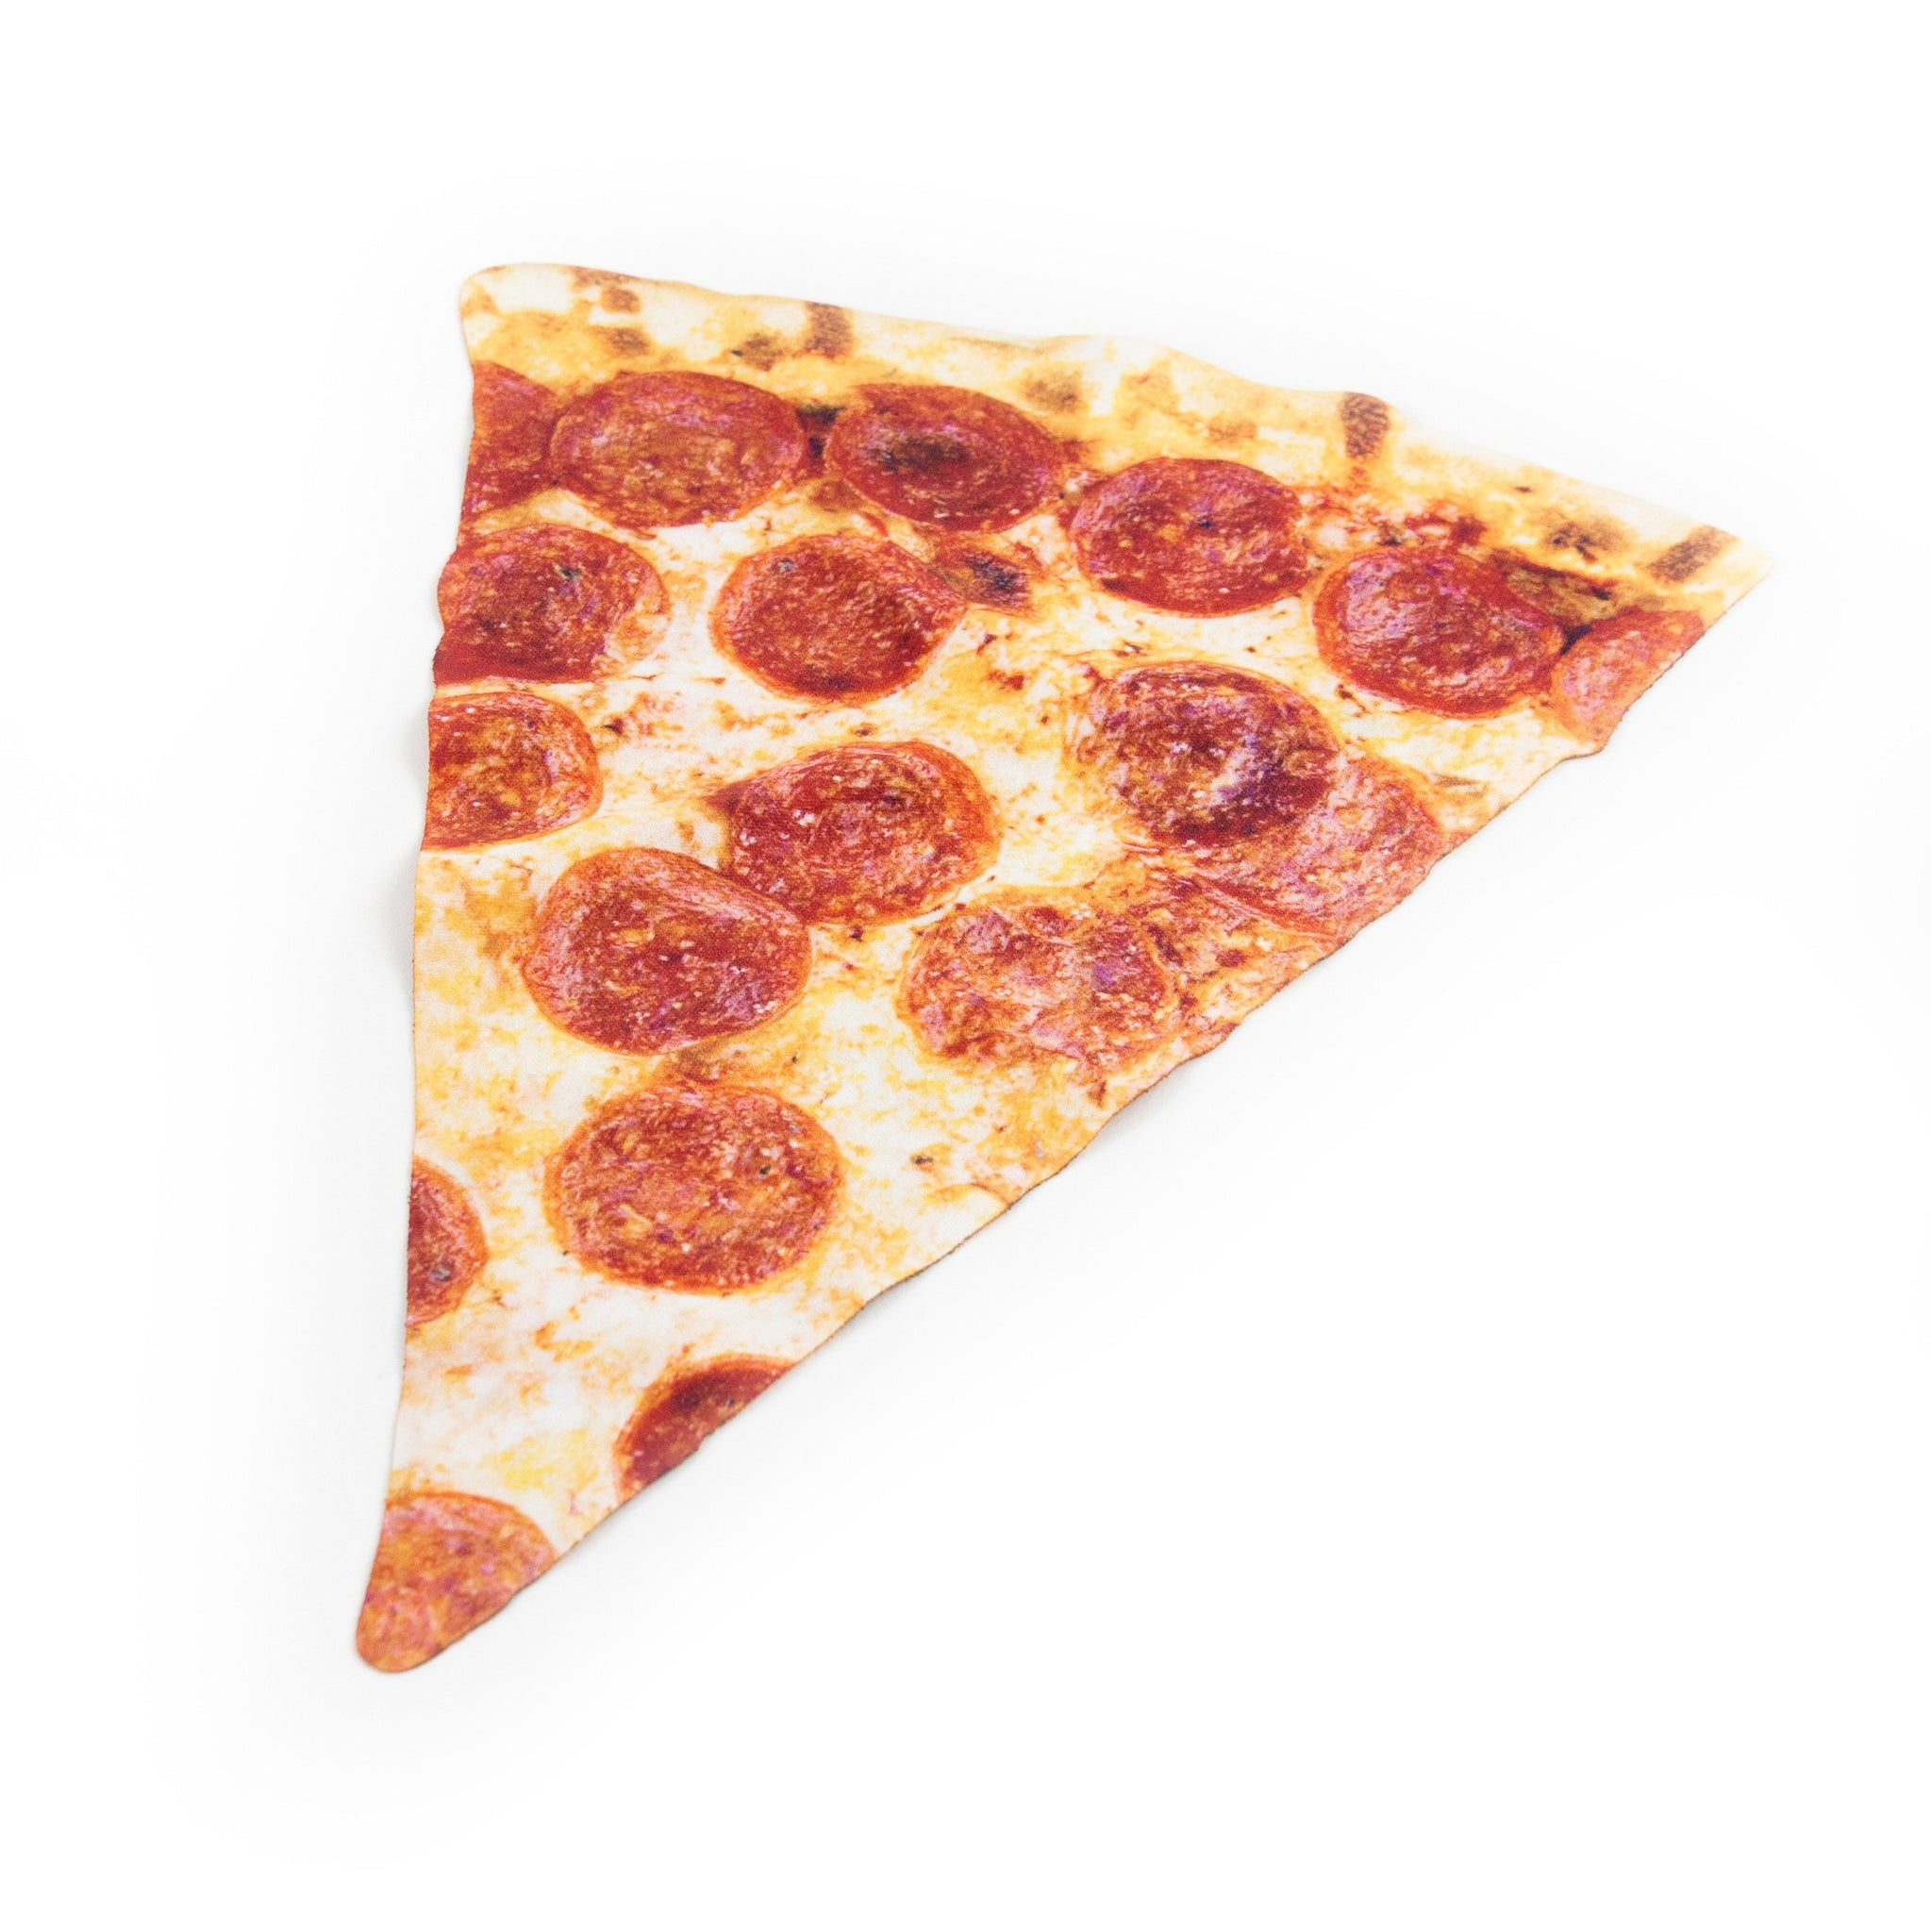 Image Result For How To Make Pizza At Homea